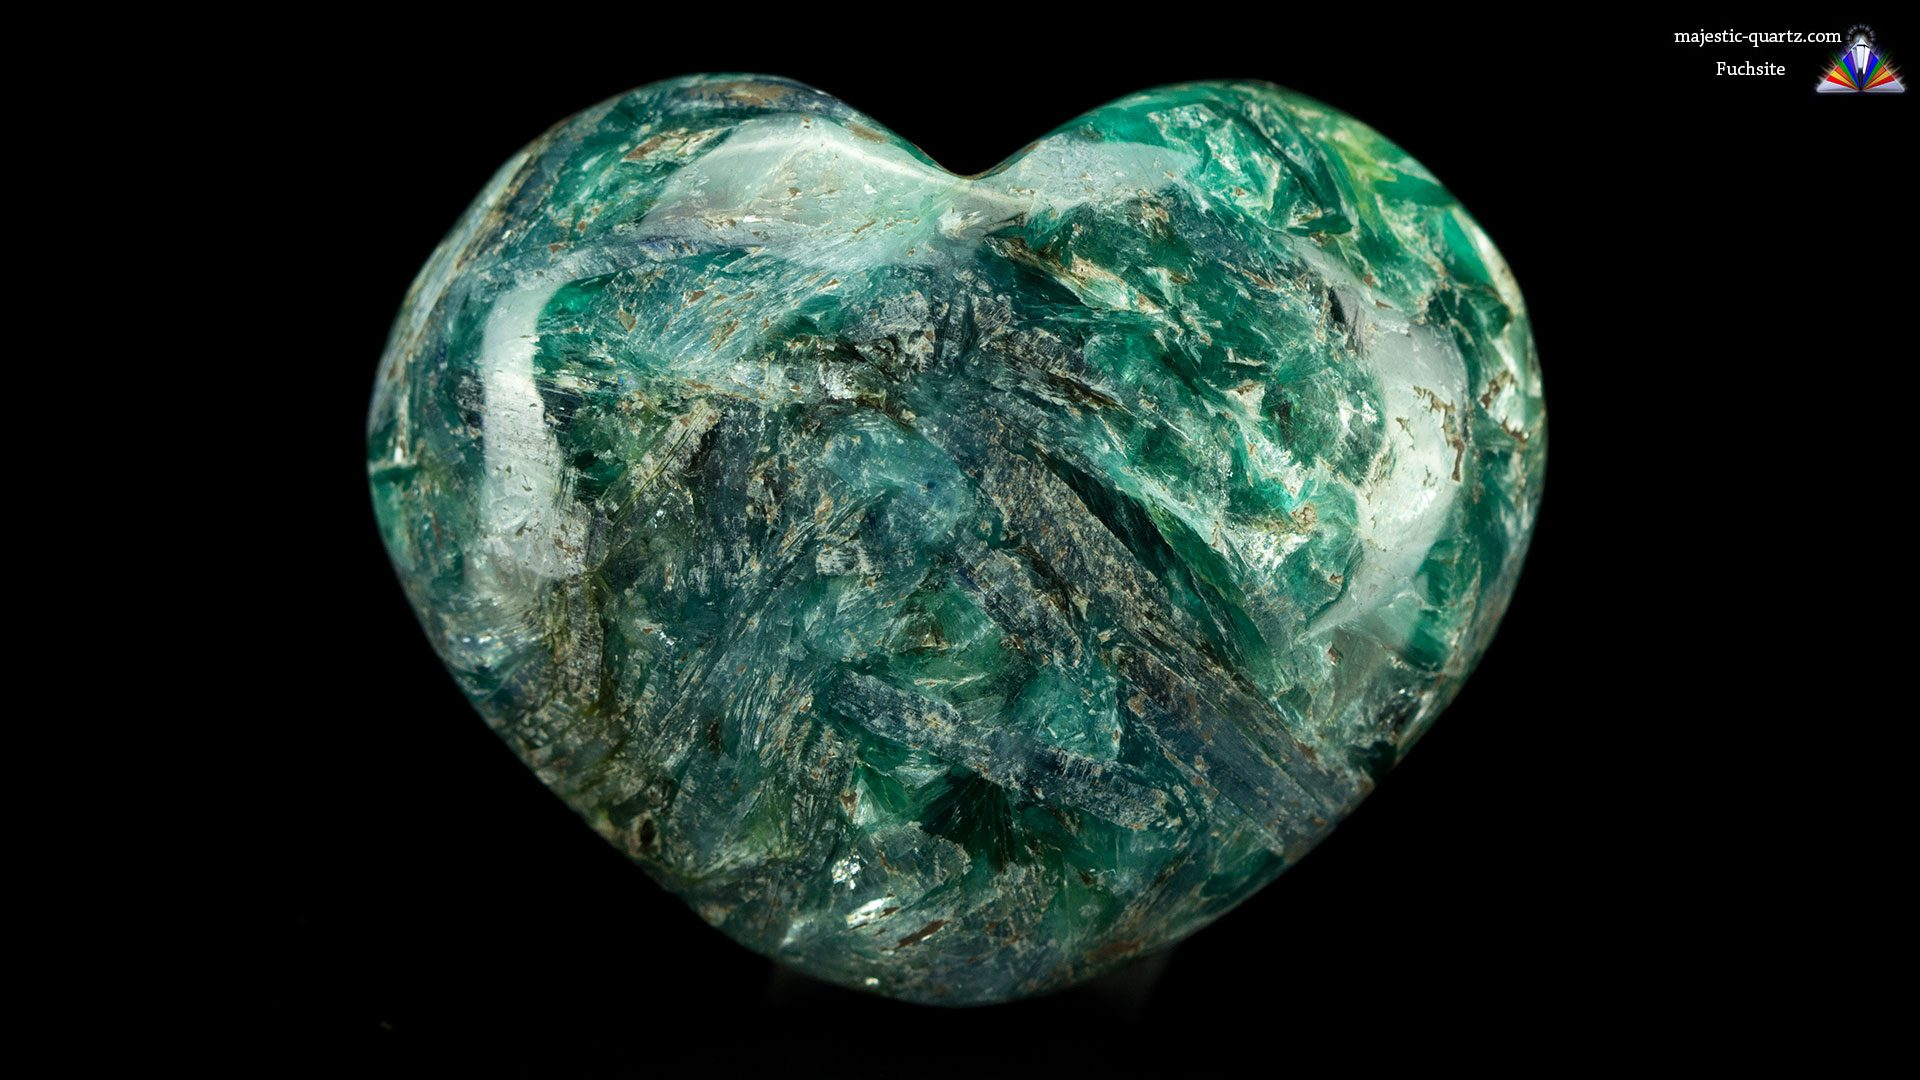 Fuchsite Heart - Photograph by Anthony Bradford